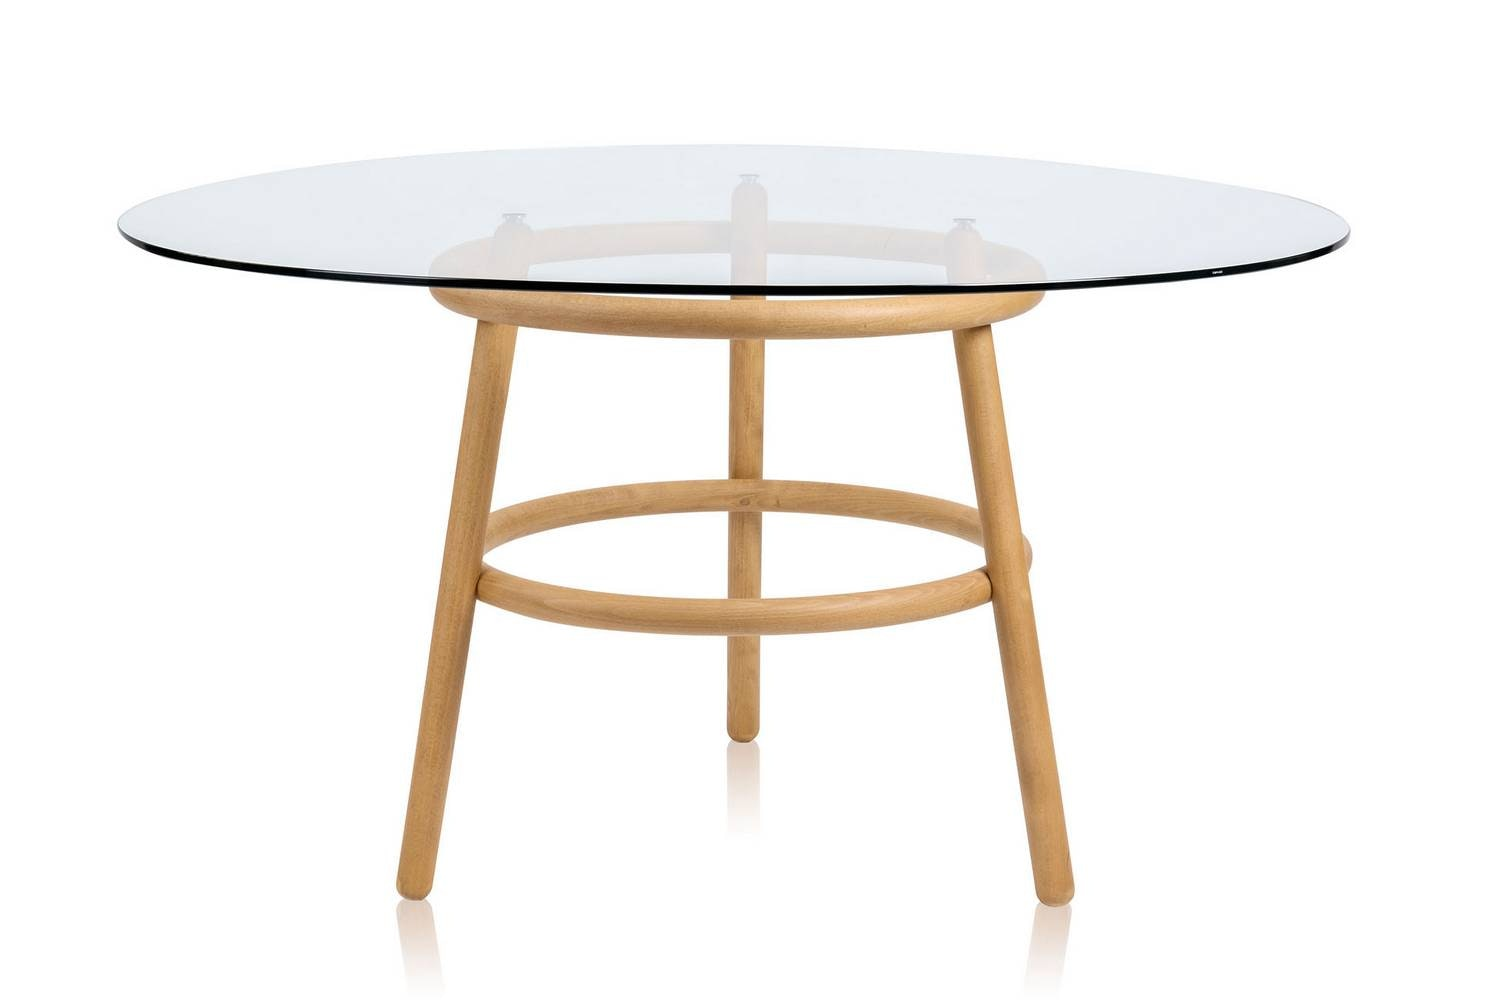 Magistretti 03 02 Table by Vico Magistretti for Wiener GTV Design